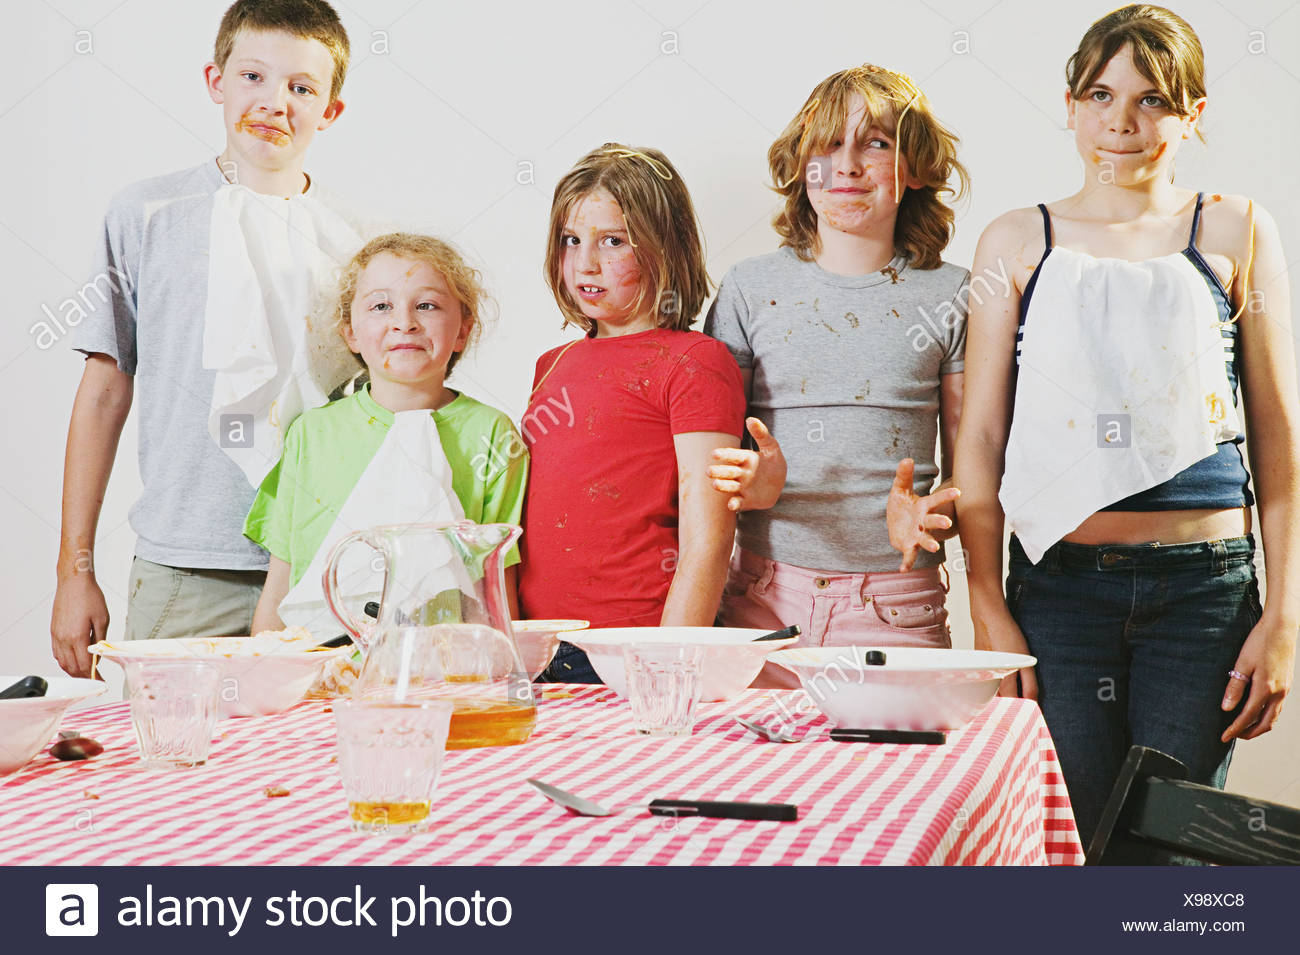 Messy children looking guilty - Stock Image